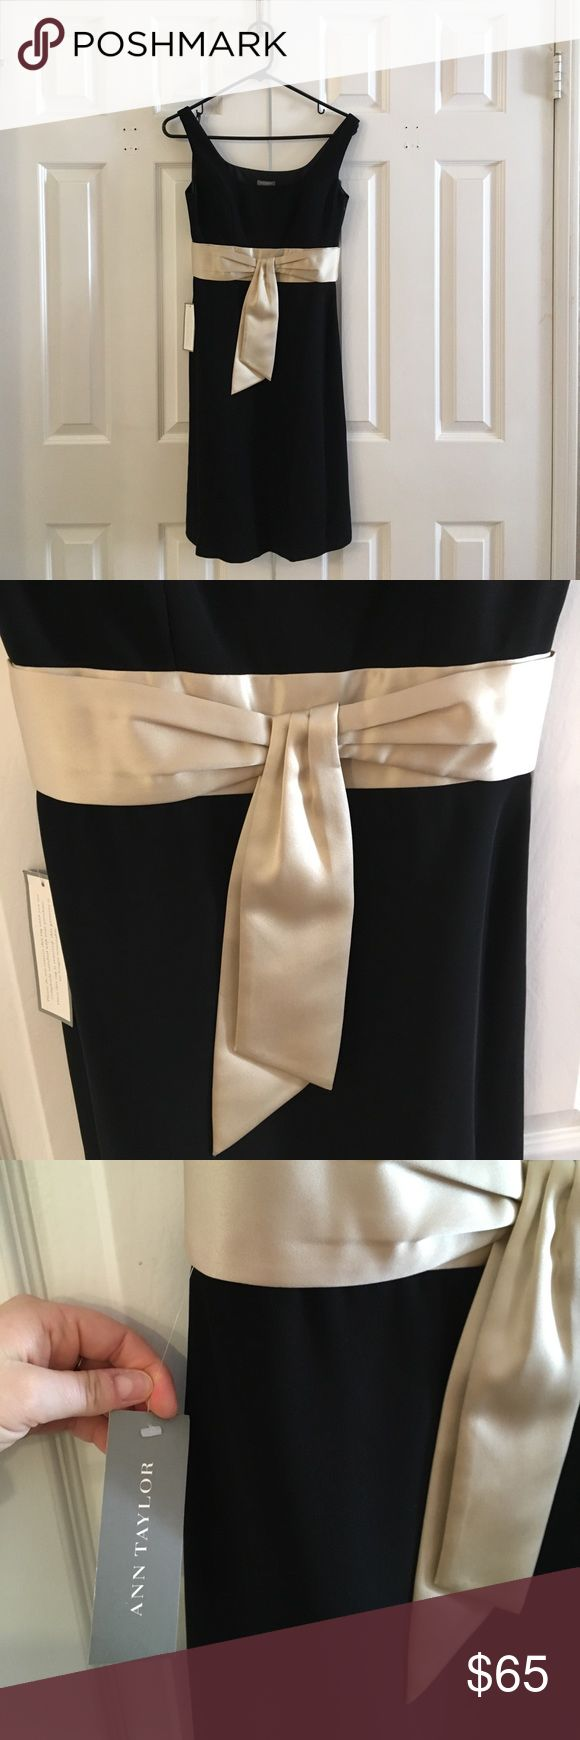 NEW Ann Taylor Petite black dress For a night out, date night, formal event. Size: petite 0. New tags still attached, never been worn. Beautiful accent in a cream wrap around below bust line Ann Taylor Dresses Midi